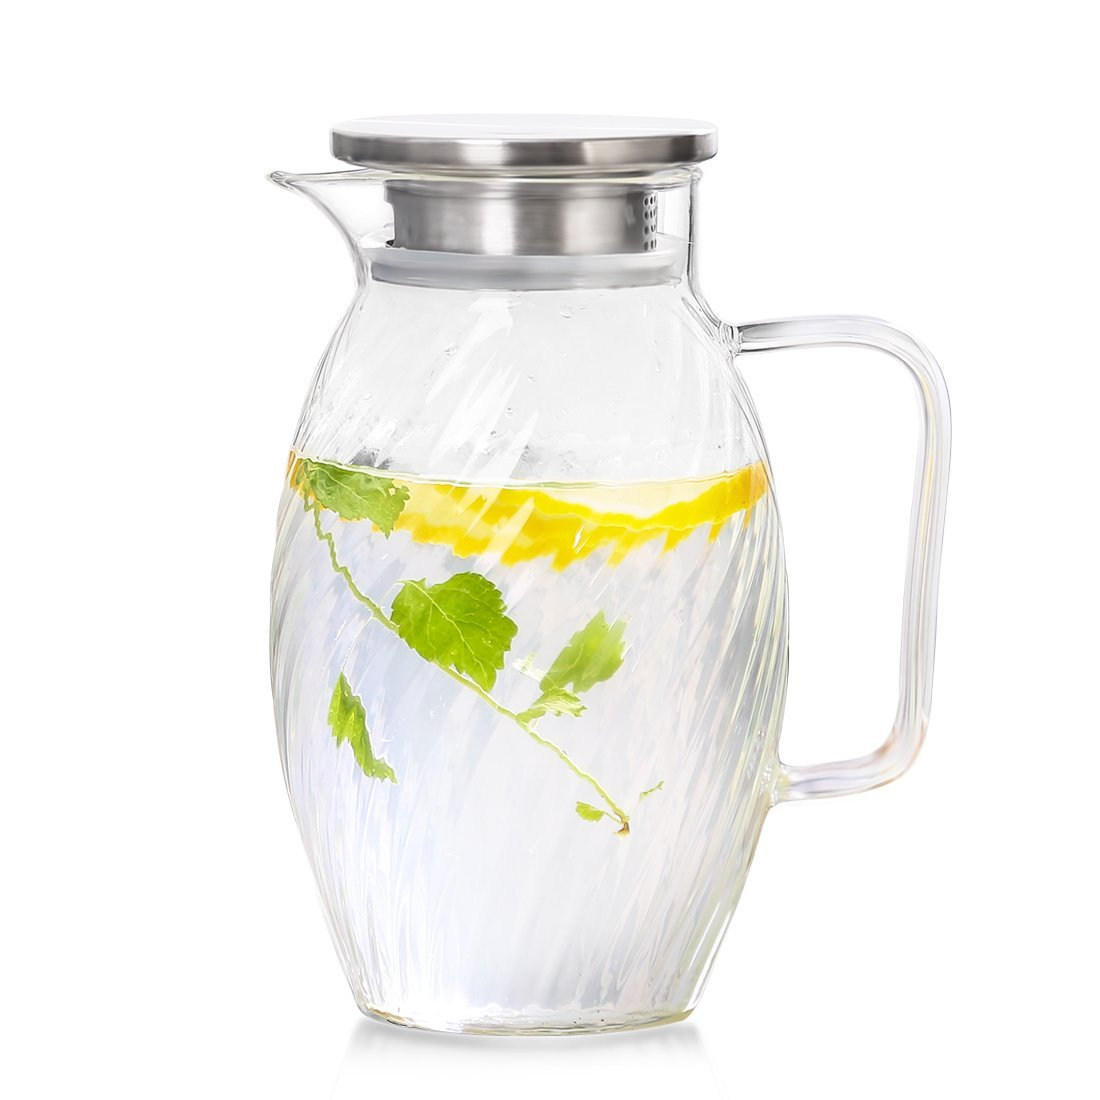 ONEISALL 1.5 Liter 51.24 Ounces Large Borosilicate Glass Pitcher with Strainer Lid Water Carafe Jug for Hot/Cold Water, Ice Tea and Juice Beverage